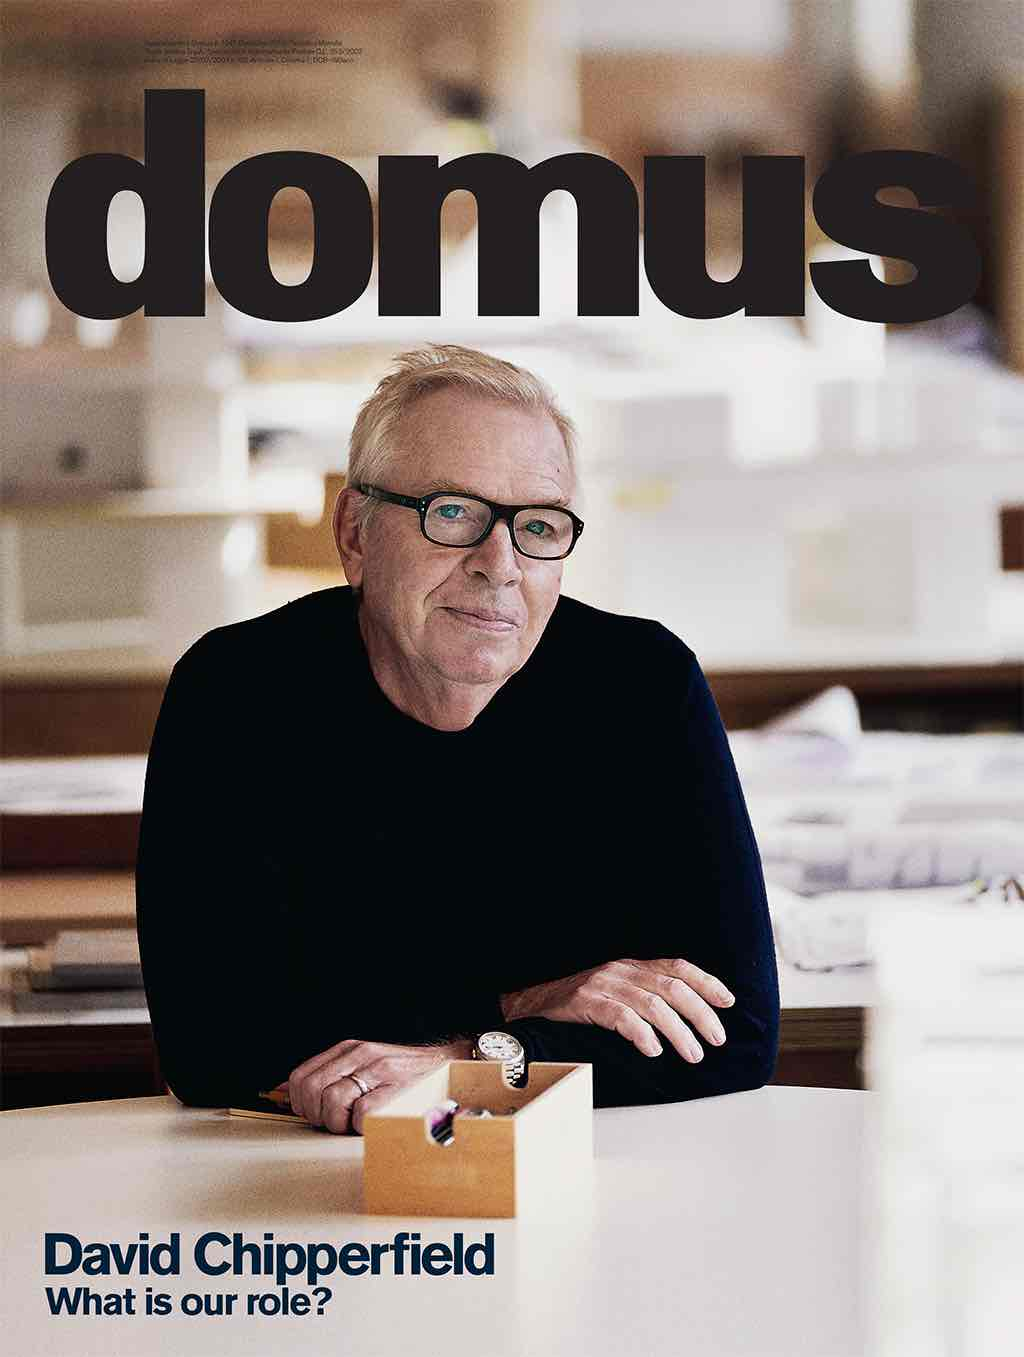 David Chipperfield Domus editor in chief